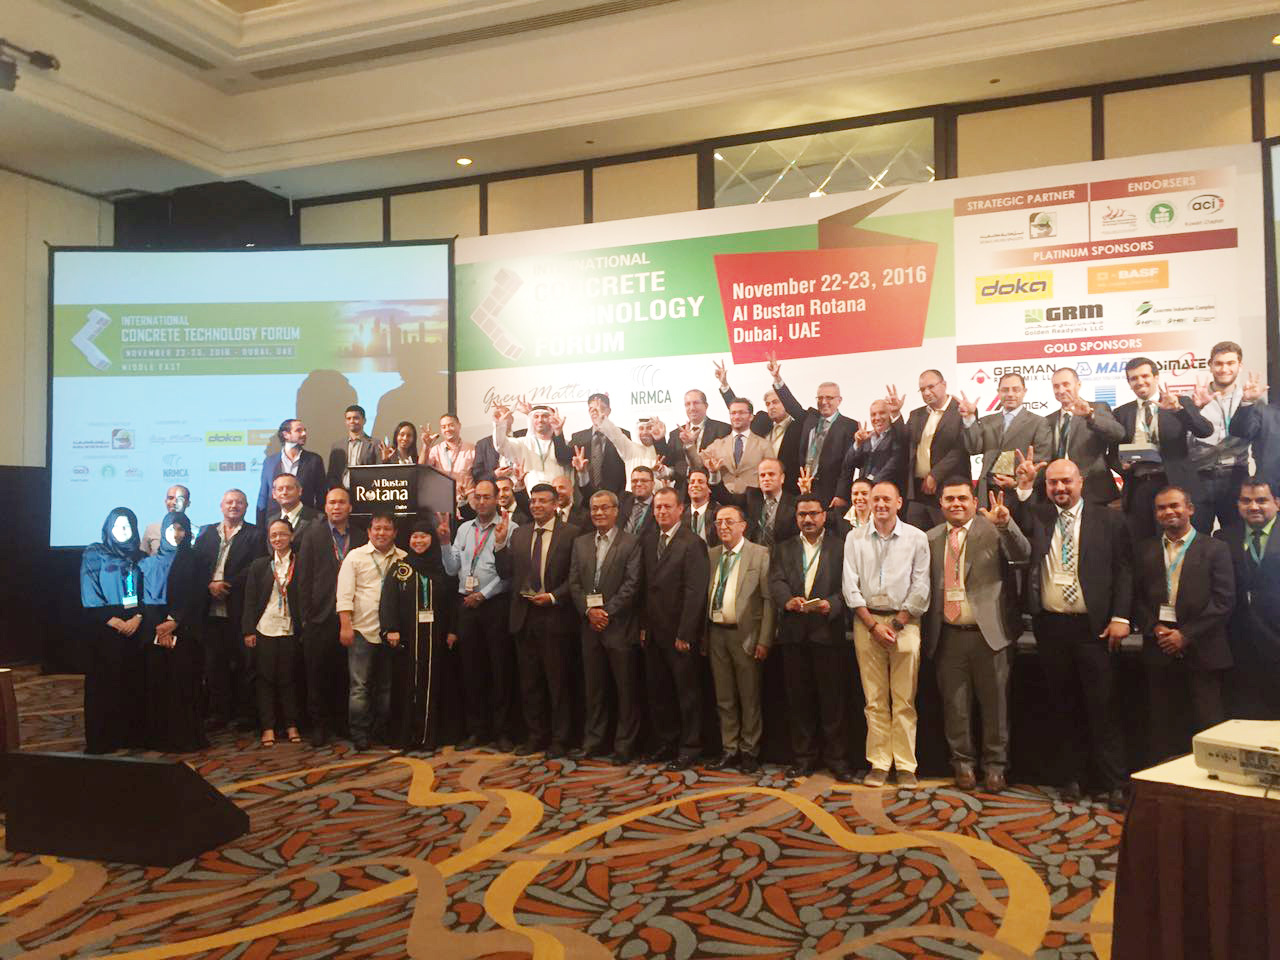 Gulf Precast obtained DCL's Gold Award 2016 for Best